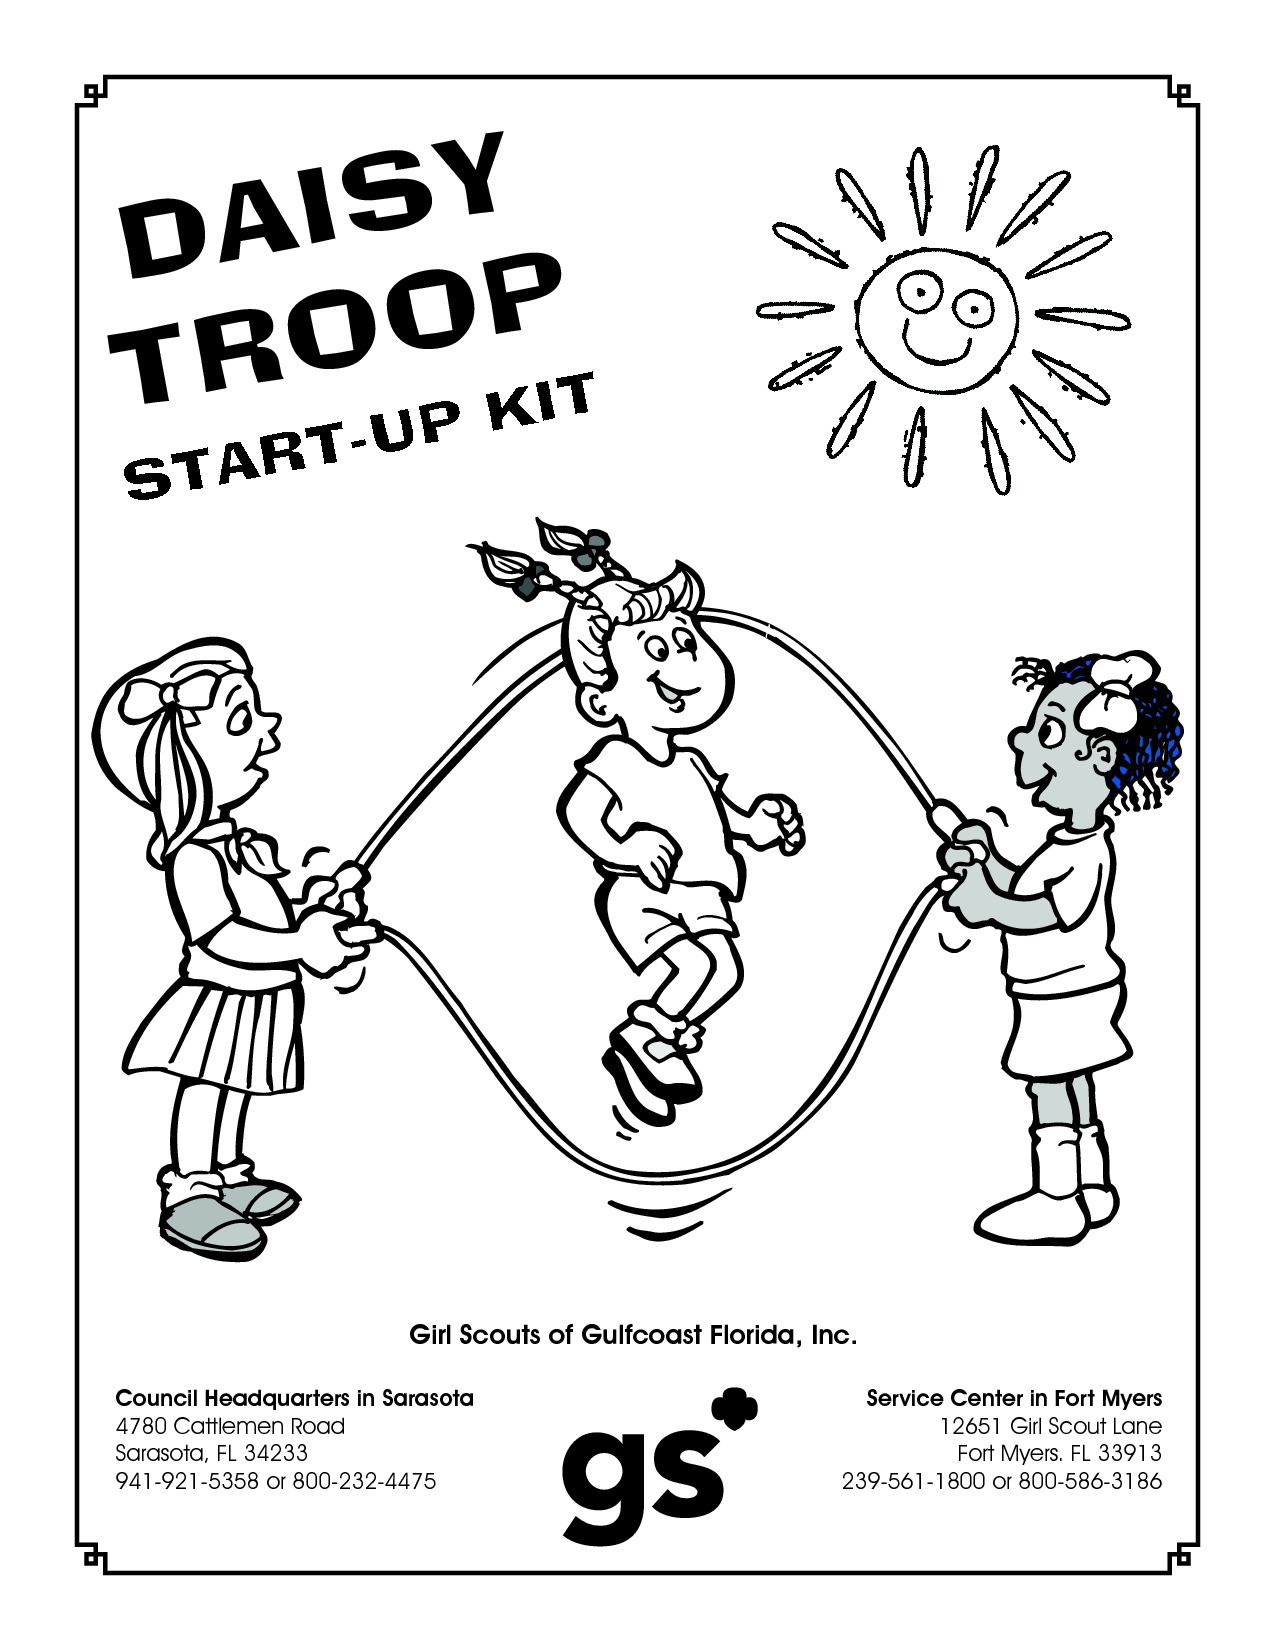 Daisy Troop Startup Kit. This is awesome! Wish I had seen